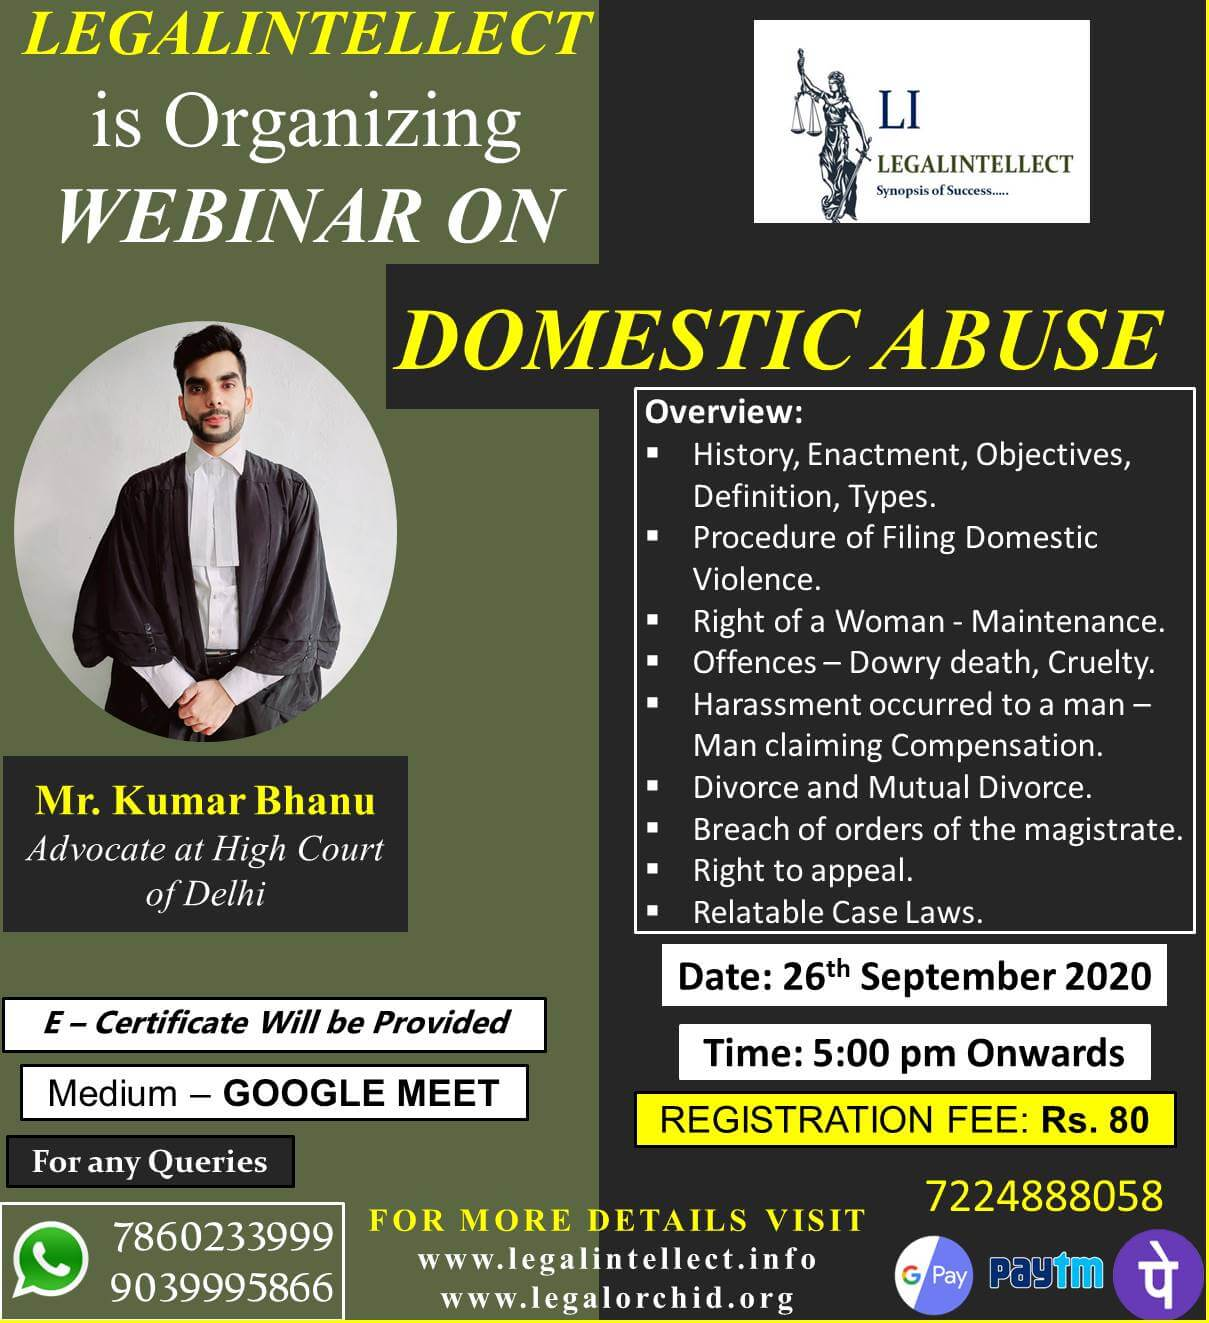 WEBINAR ON DOMESTIC ABUSE